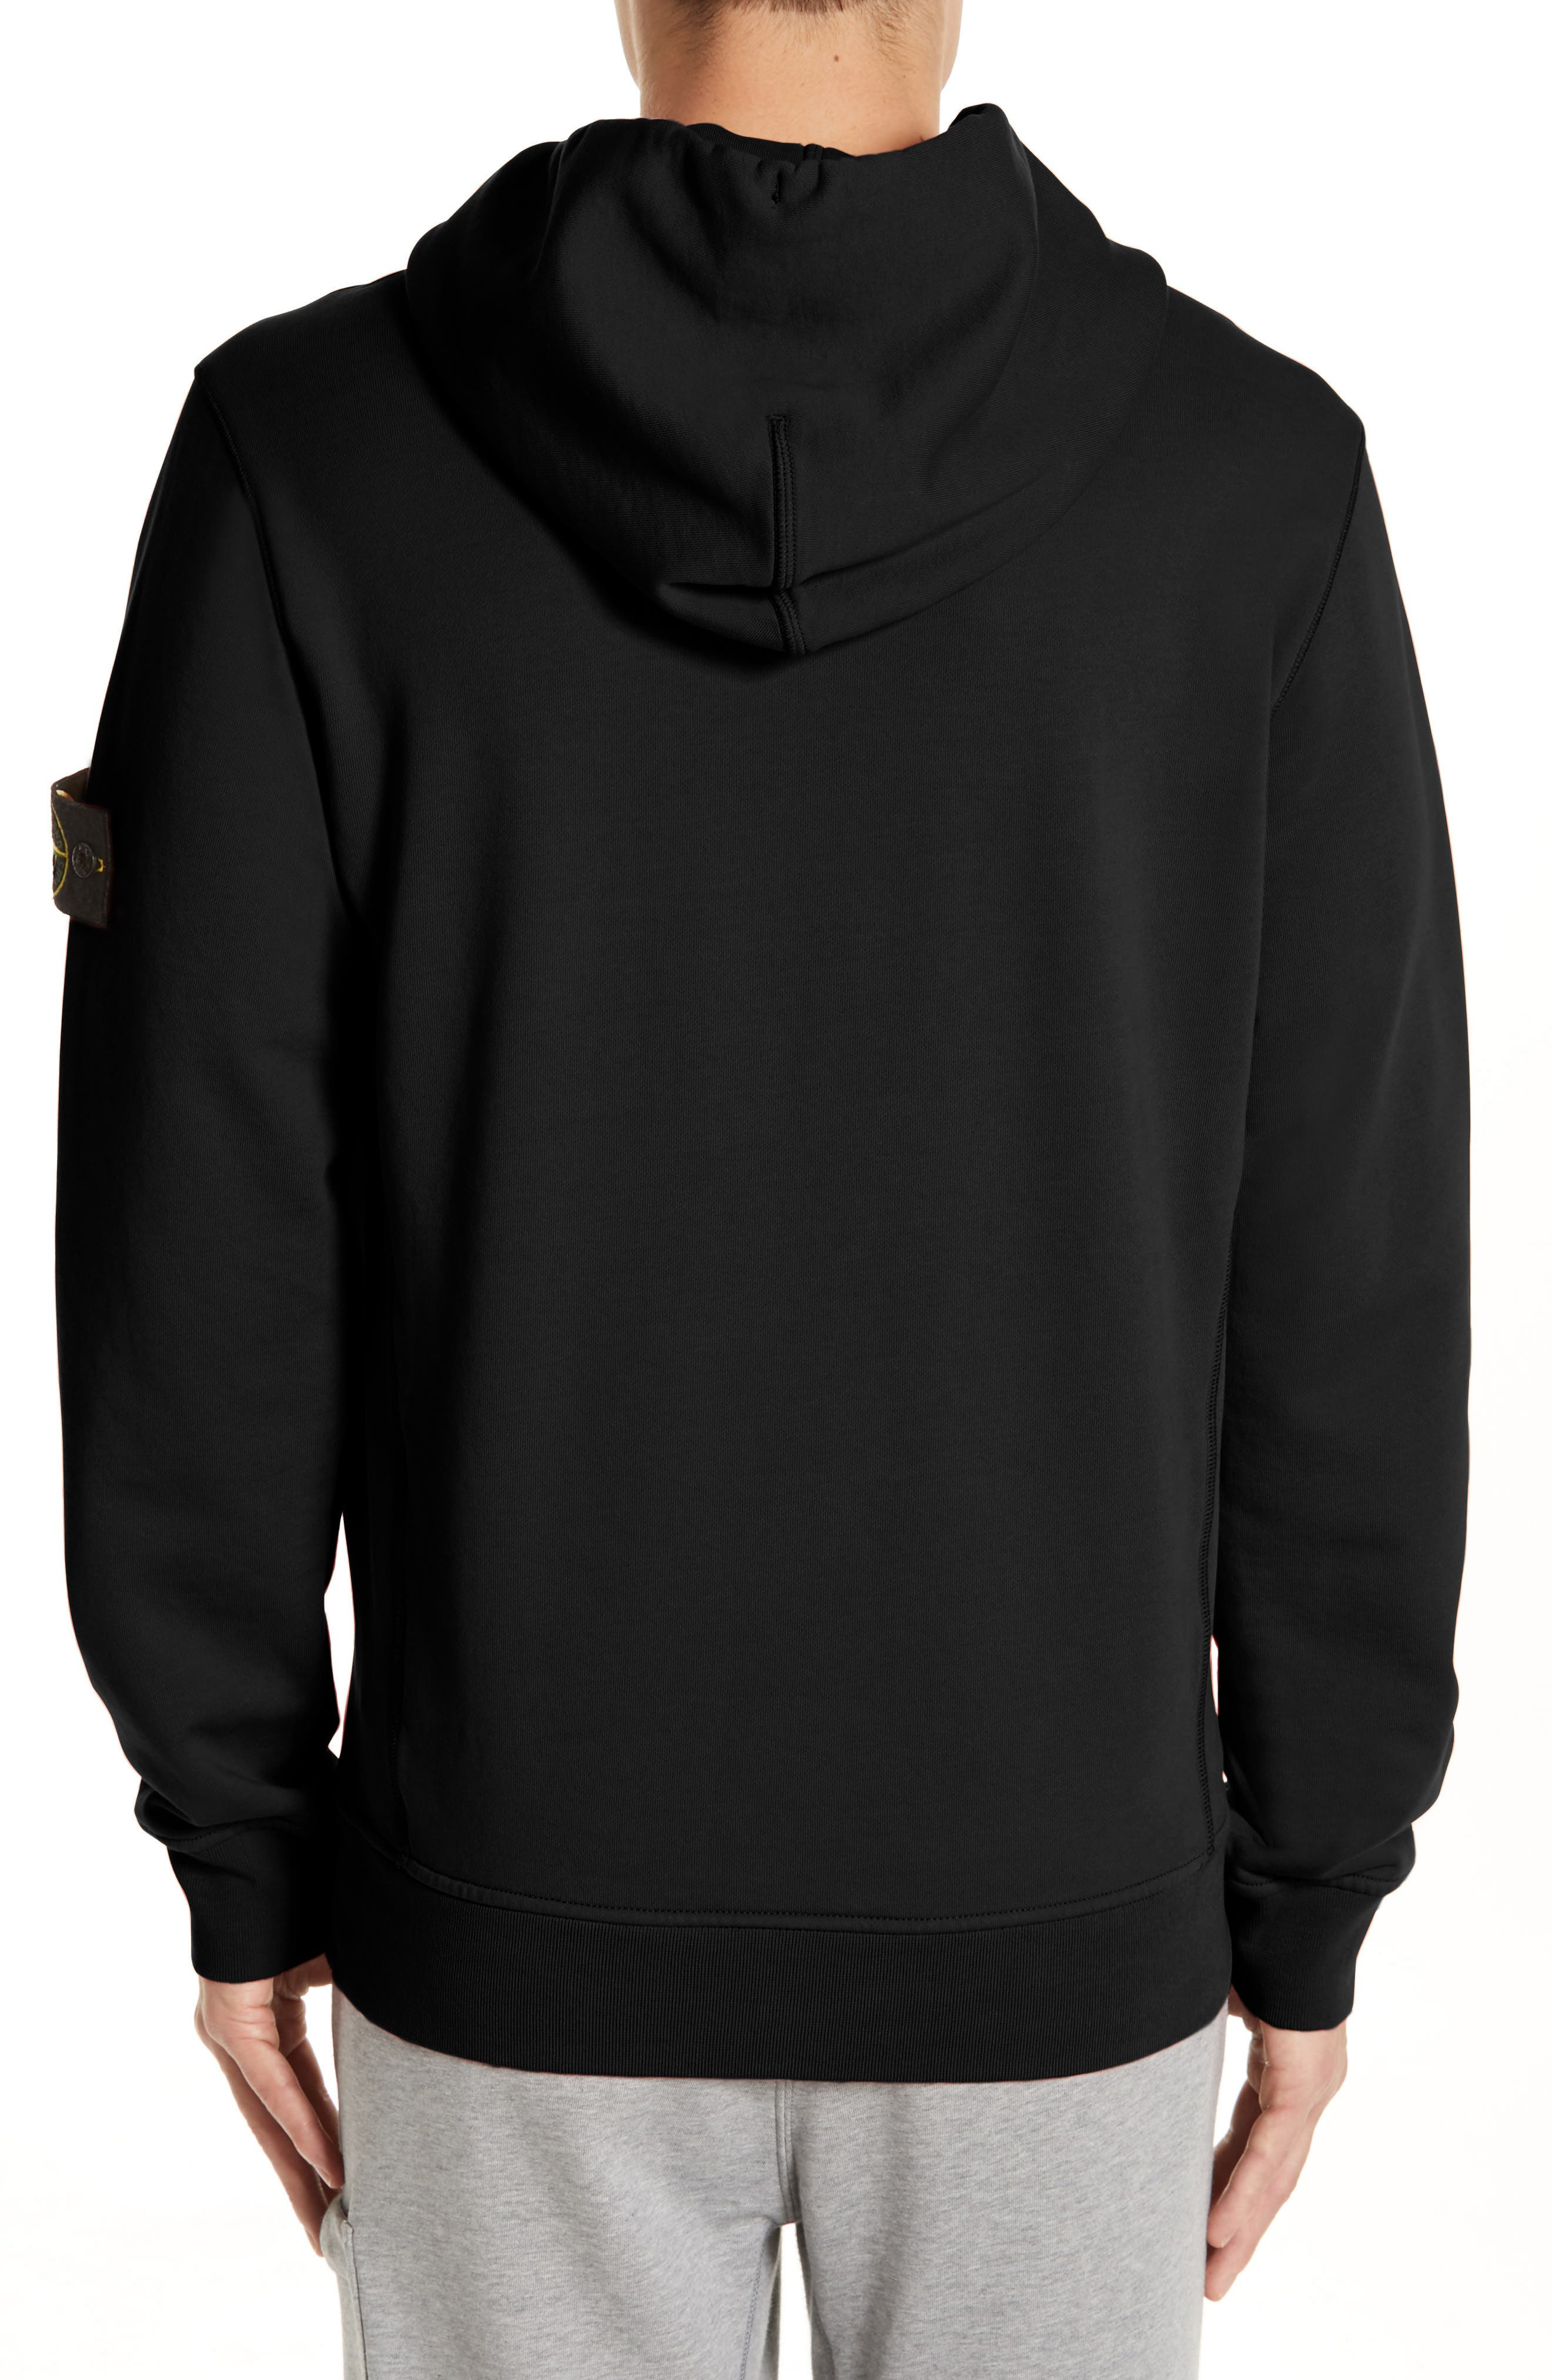 STONE ISLAND, Pullover Hoodie, Alternate thumbnail 2, color, BLACK